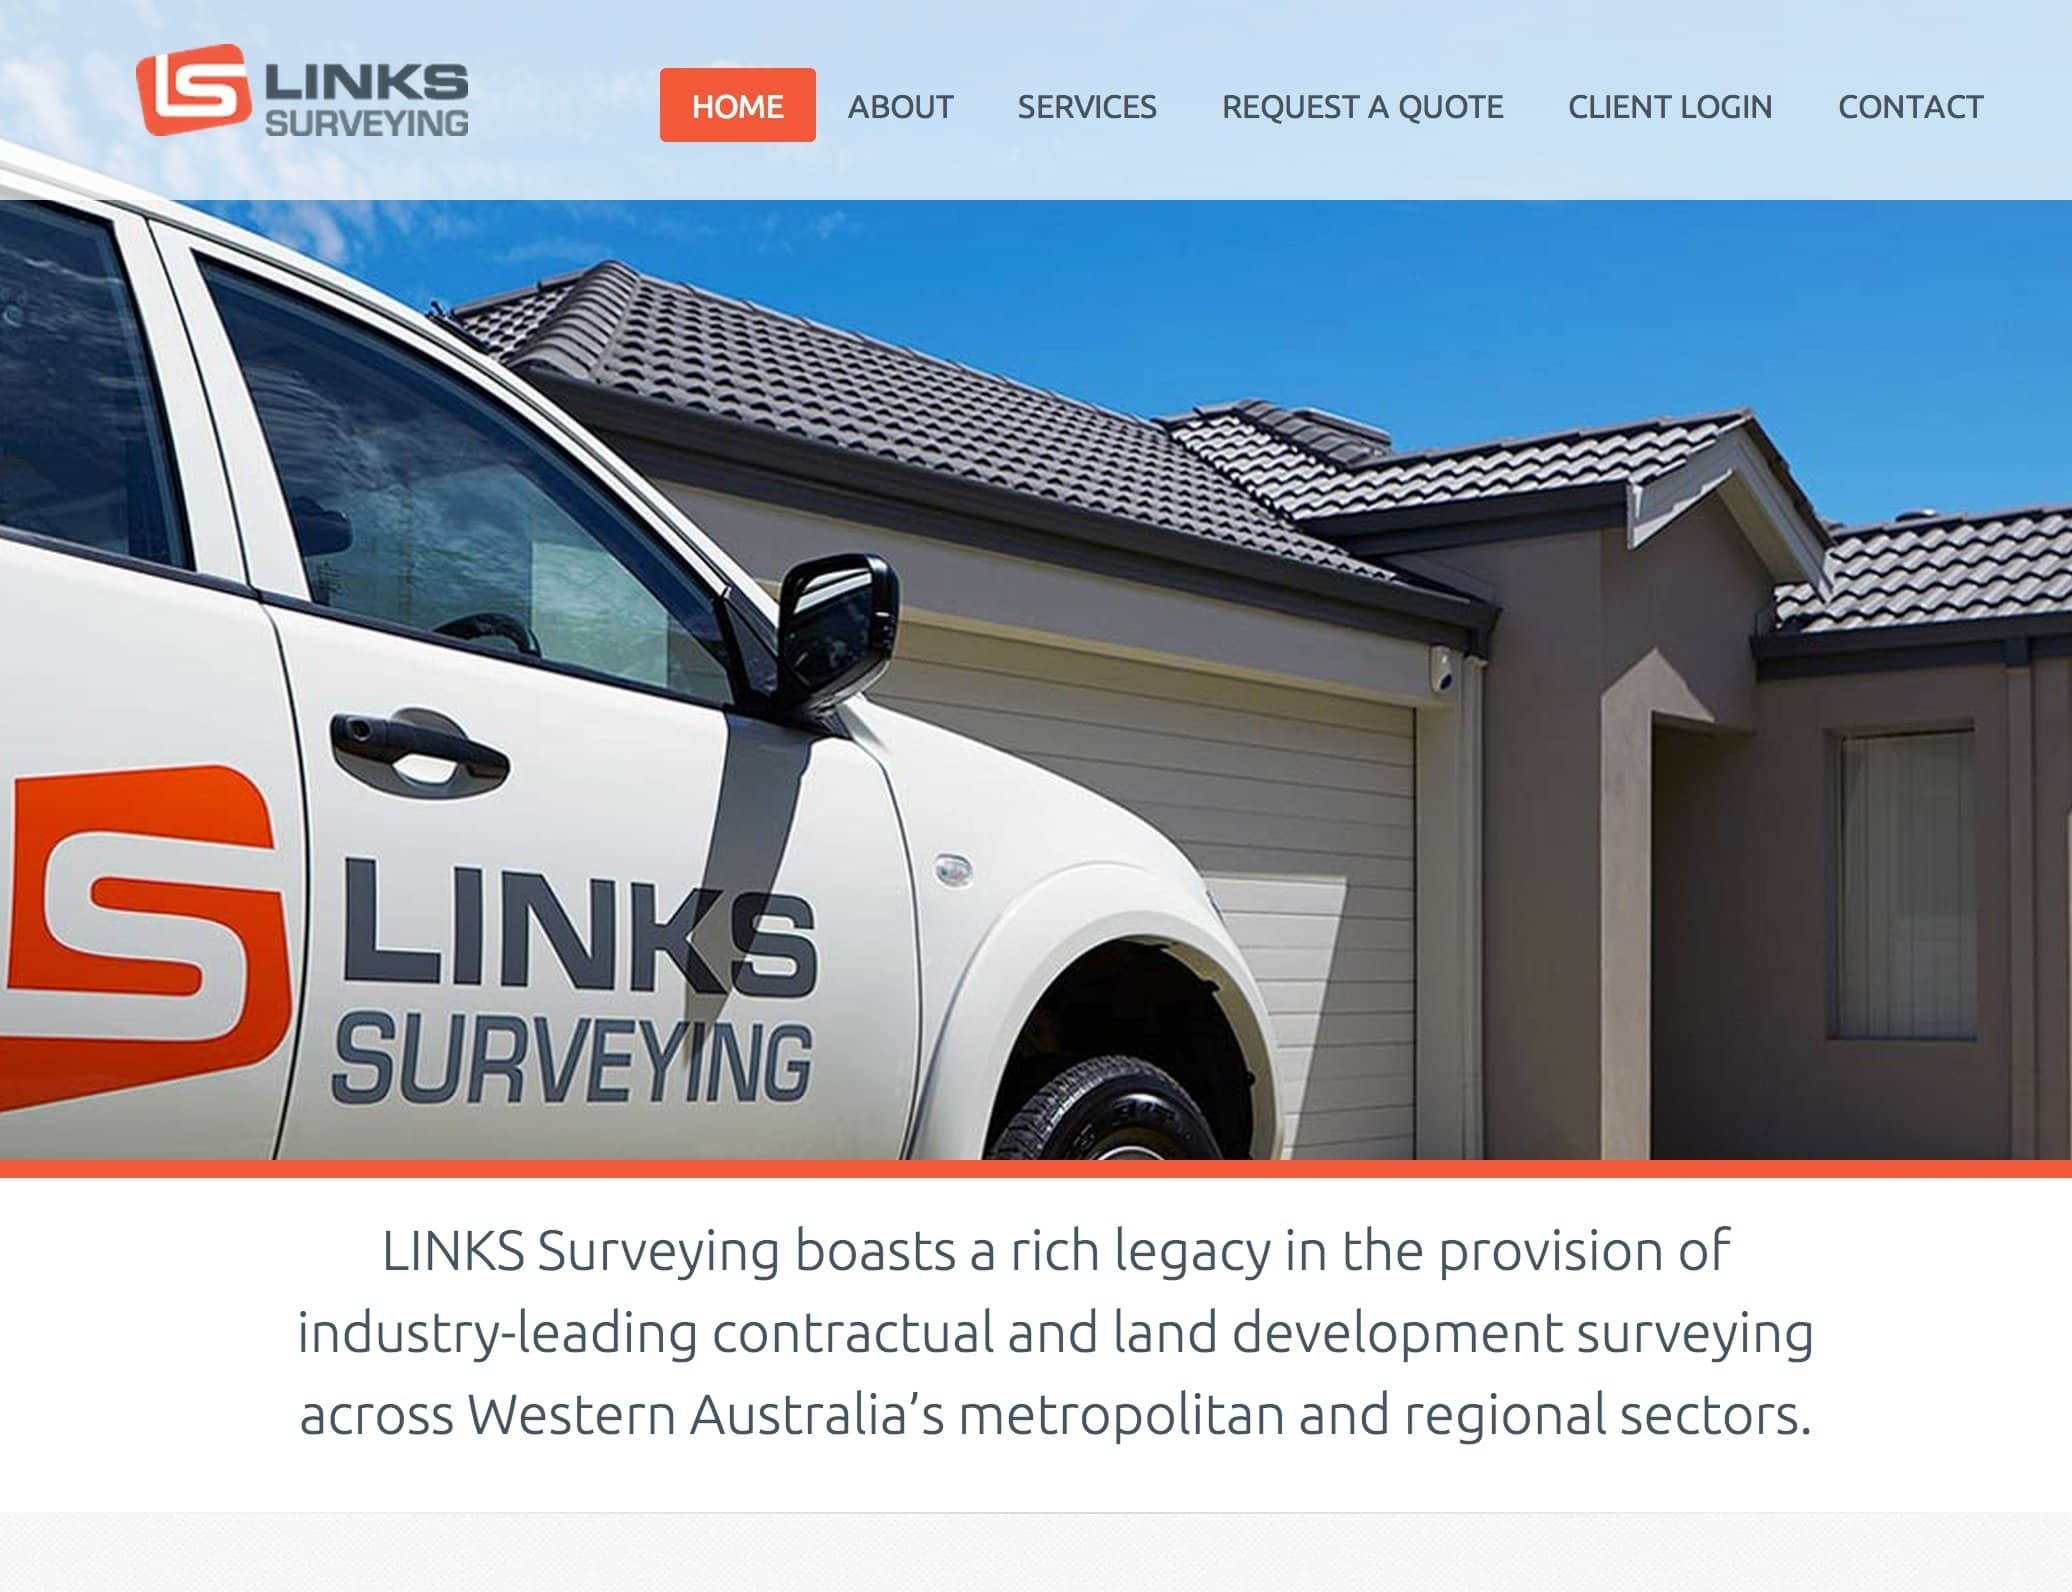 Small Business Web Design Links Surveying Perth